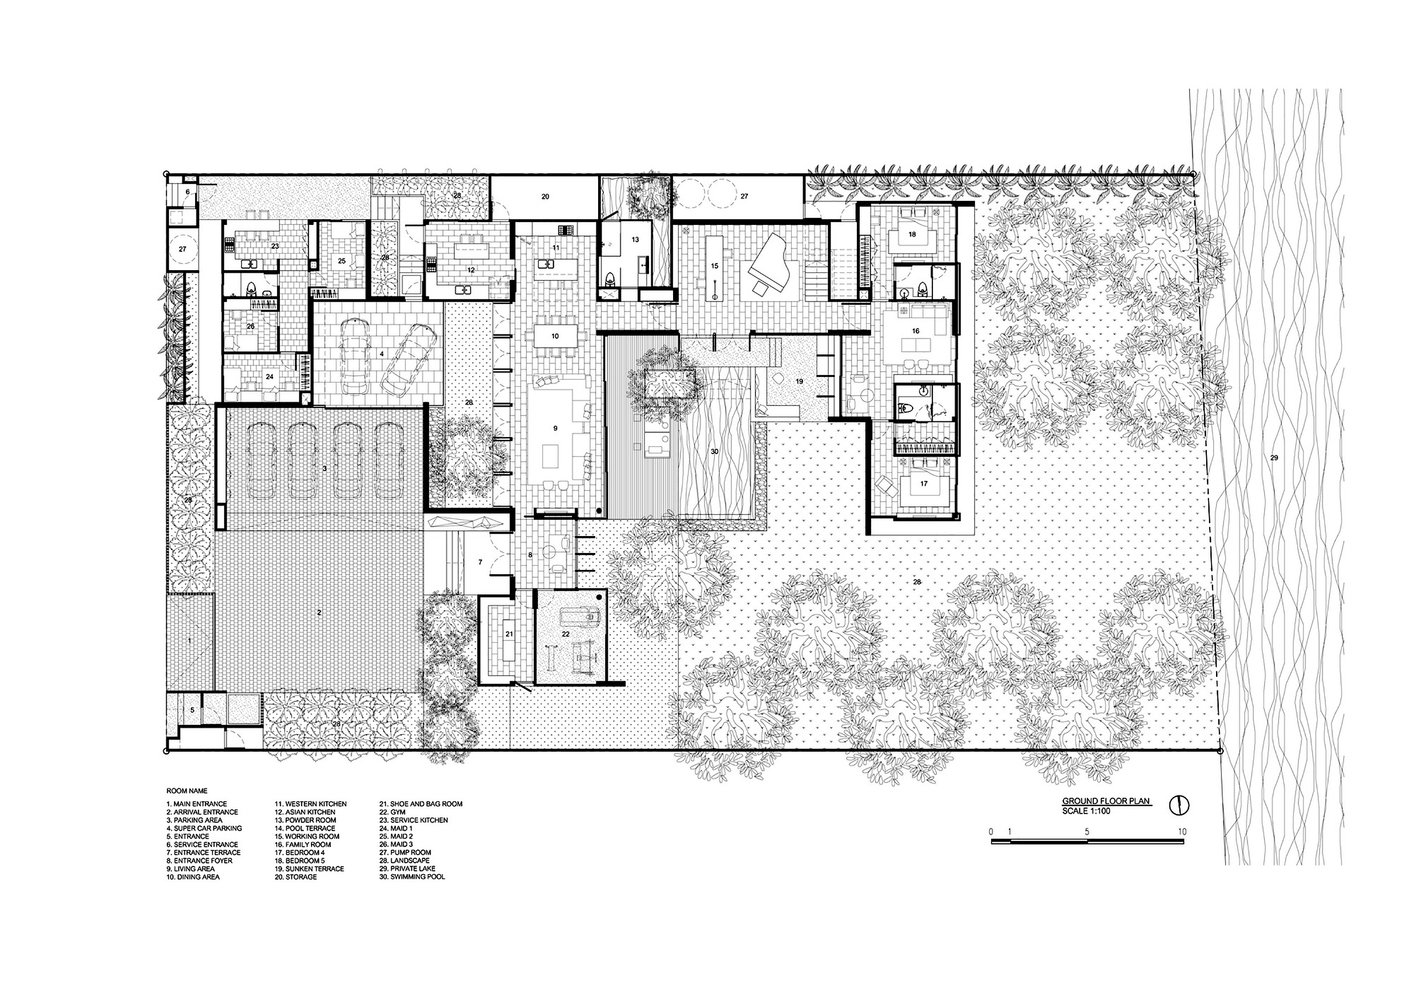 Traditional chinese courtyard house floor plan for Chinese home designs